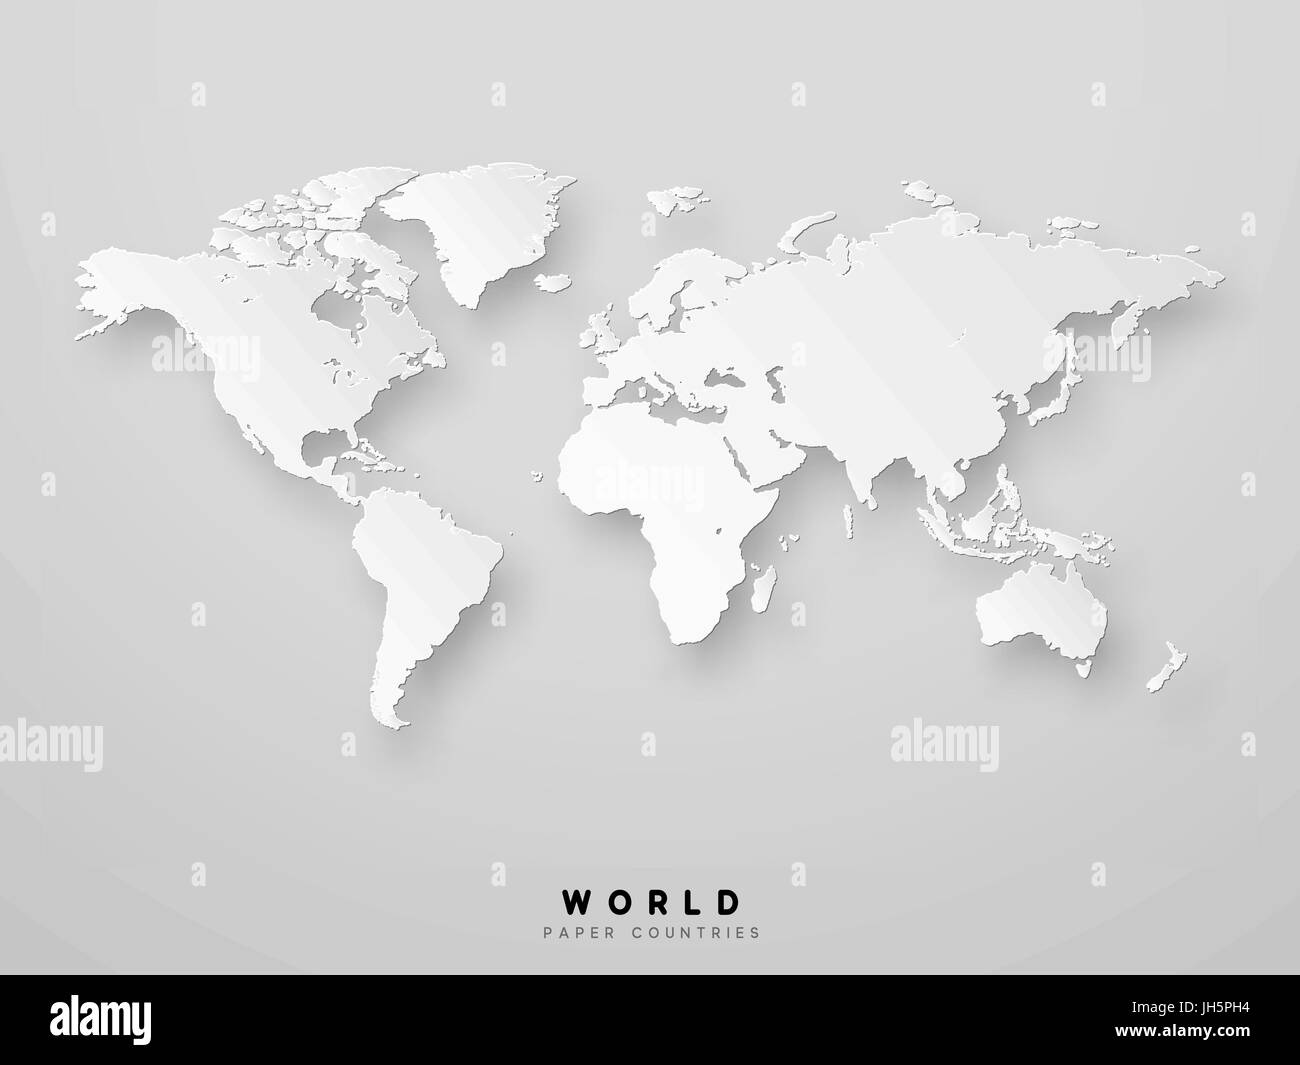 World map detailed design in white color vector illustration. 3D paper - Stock Image